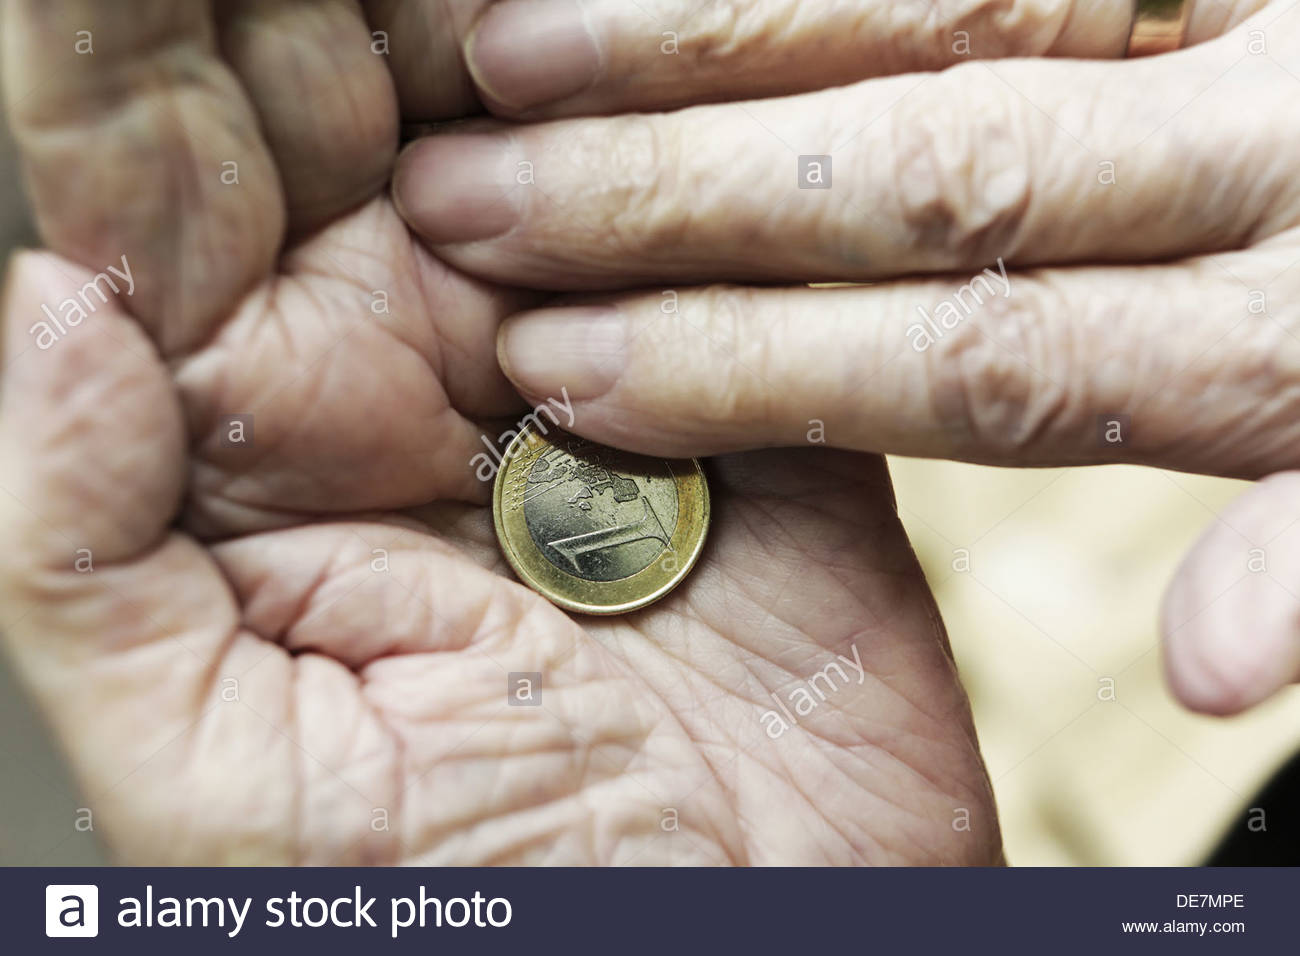 Germany, North Rhine Westphalia, Cologne, Senior woman holding one Euro coin, close up - Stock Image